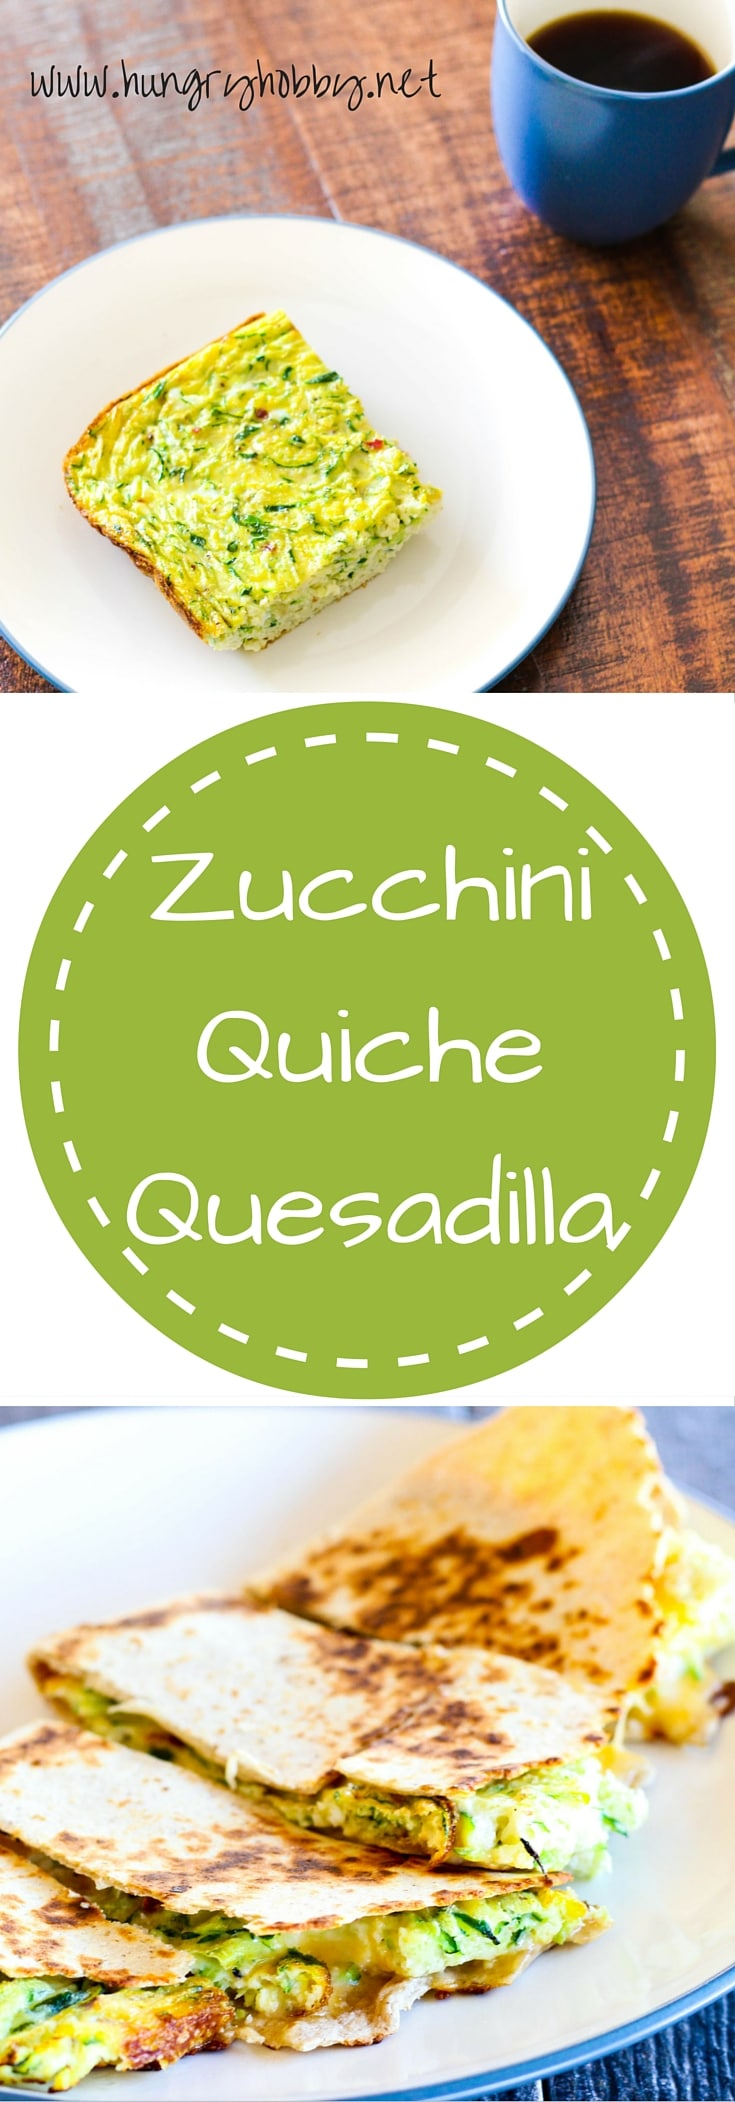 Zucchini Quiche Quesadilla the perfect way to make a plan quiche into a delicious savory breakfast!